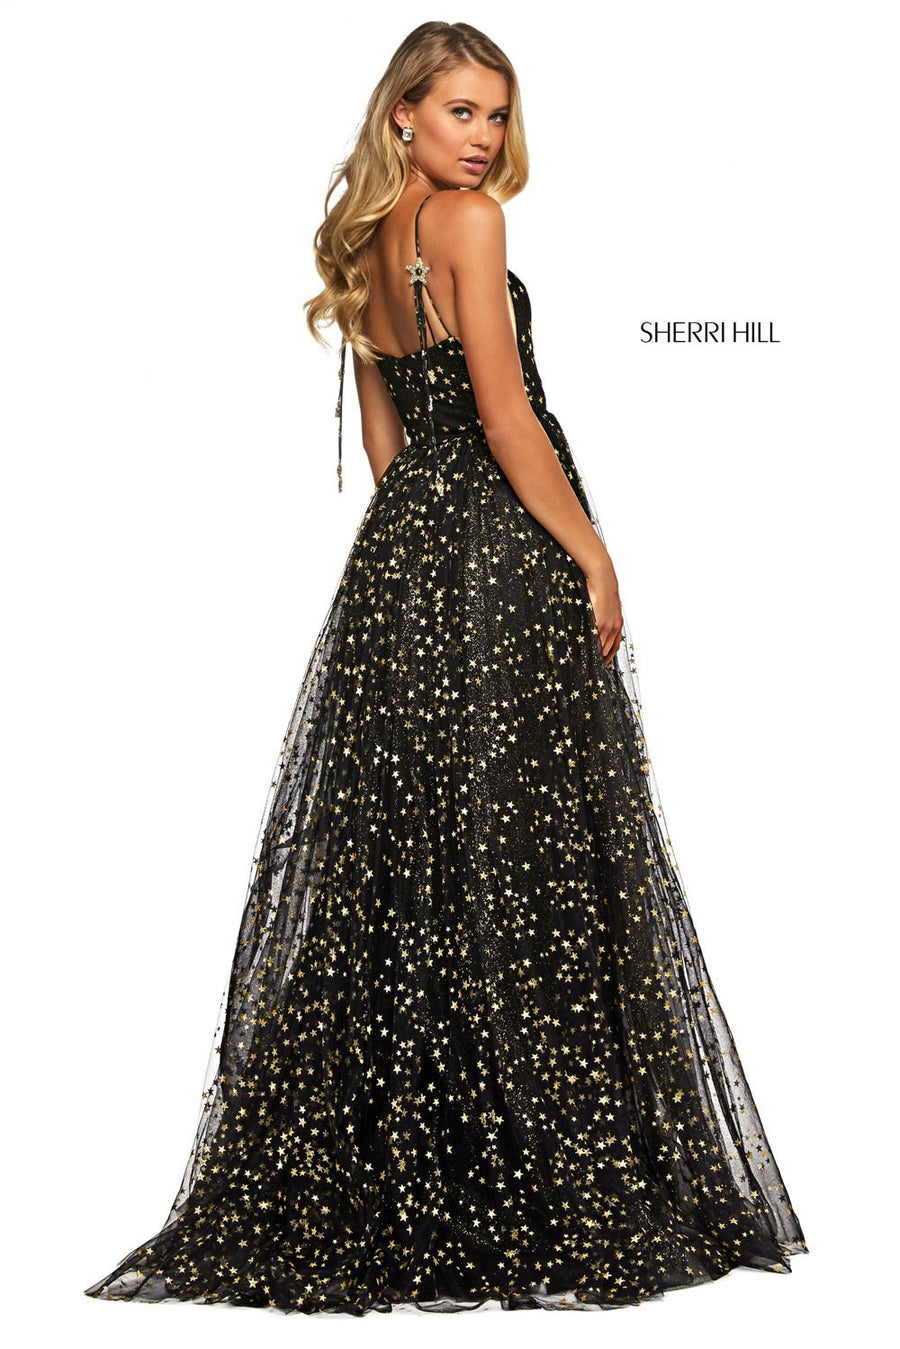 Sherri Hill 53583 prom dress images.  Sherri Hill 53583 is available in these colors: Blush Gold, Light Blue Silver, Black Gold, Ivory Gold, White Silver, Pink Silver, Aqua Silver.